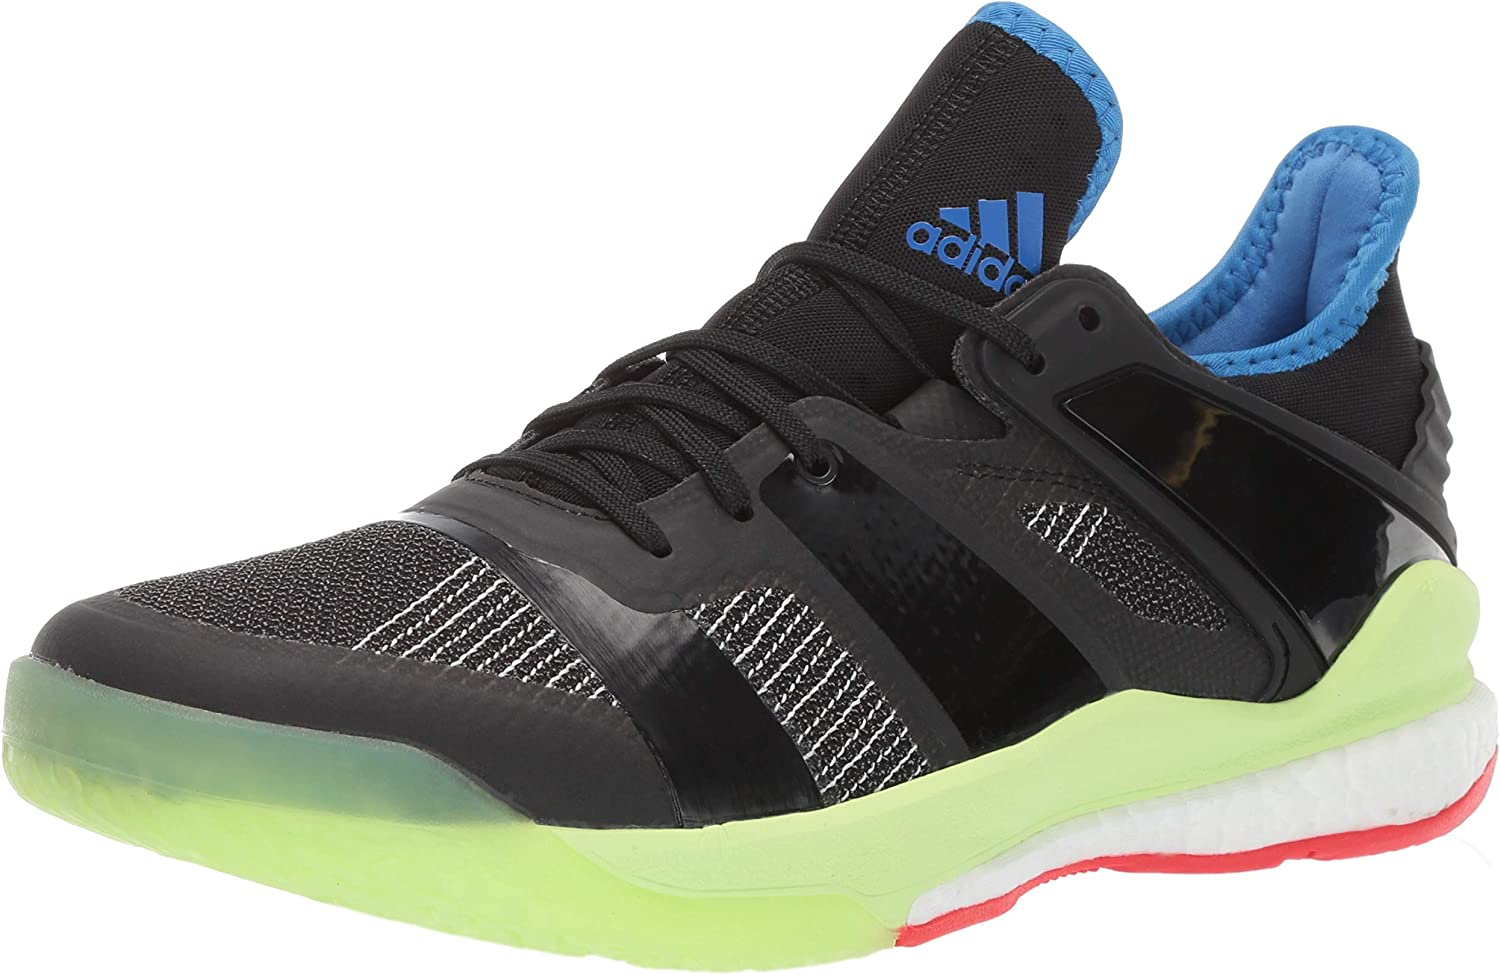 Adidas Men's Stabil X Volleyball shoes